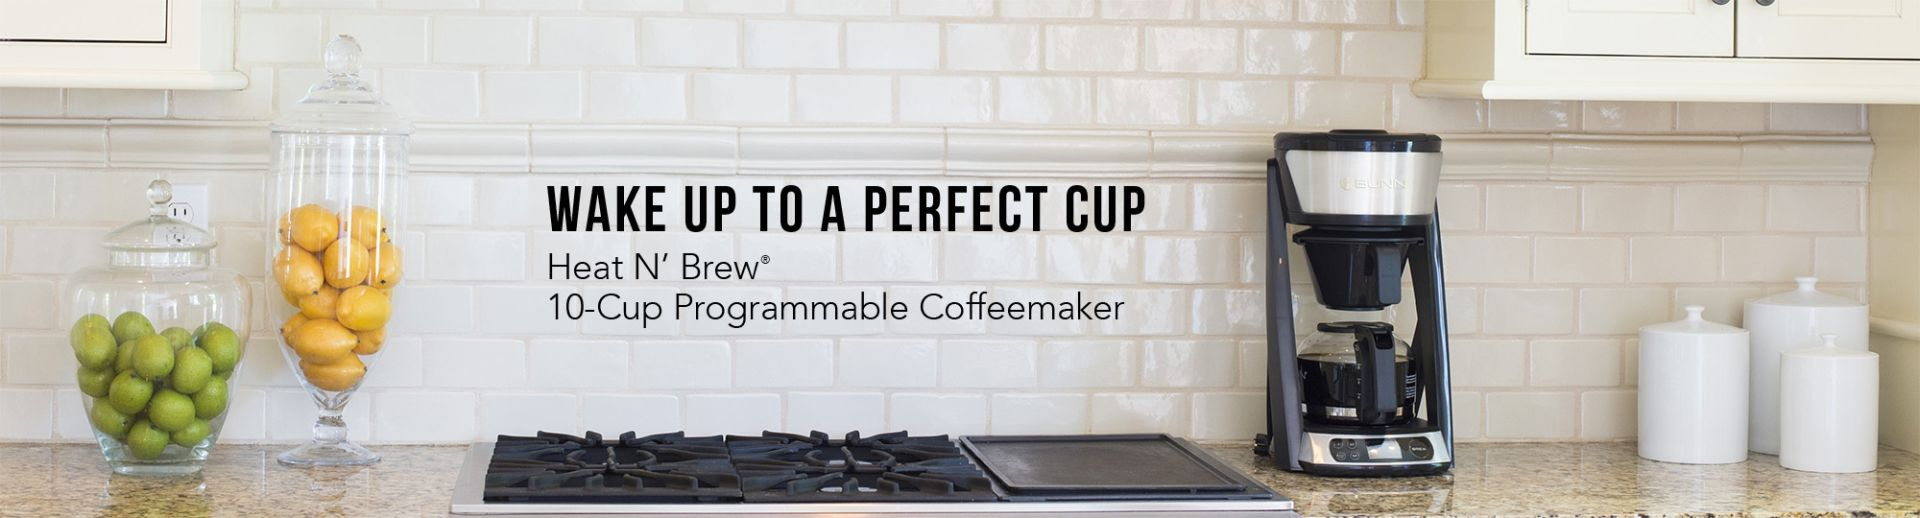 Program Your Perfect Cup!